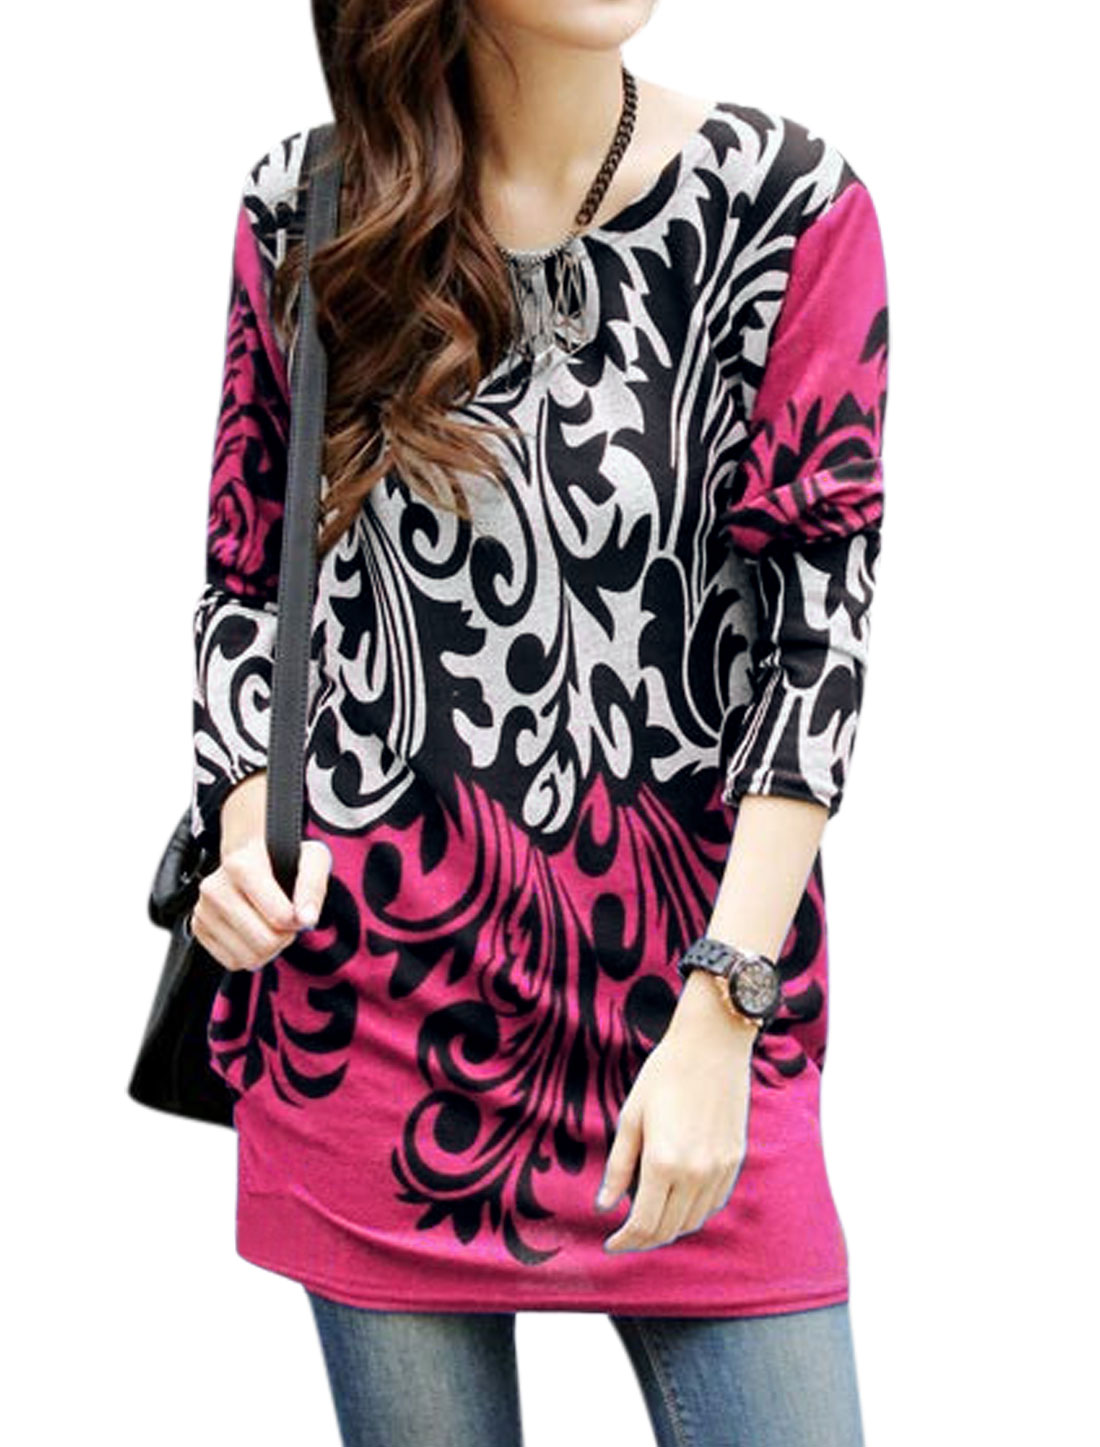 Lady Black Fuchsia Novelty Prints Pullover Loose Shirred Sides Tunic Knit Shirt S